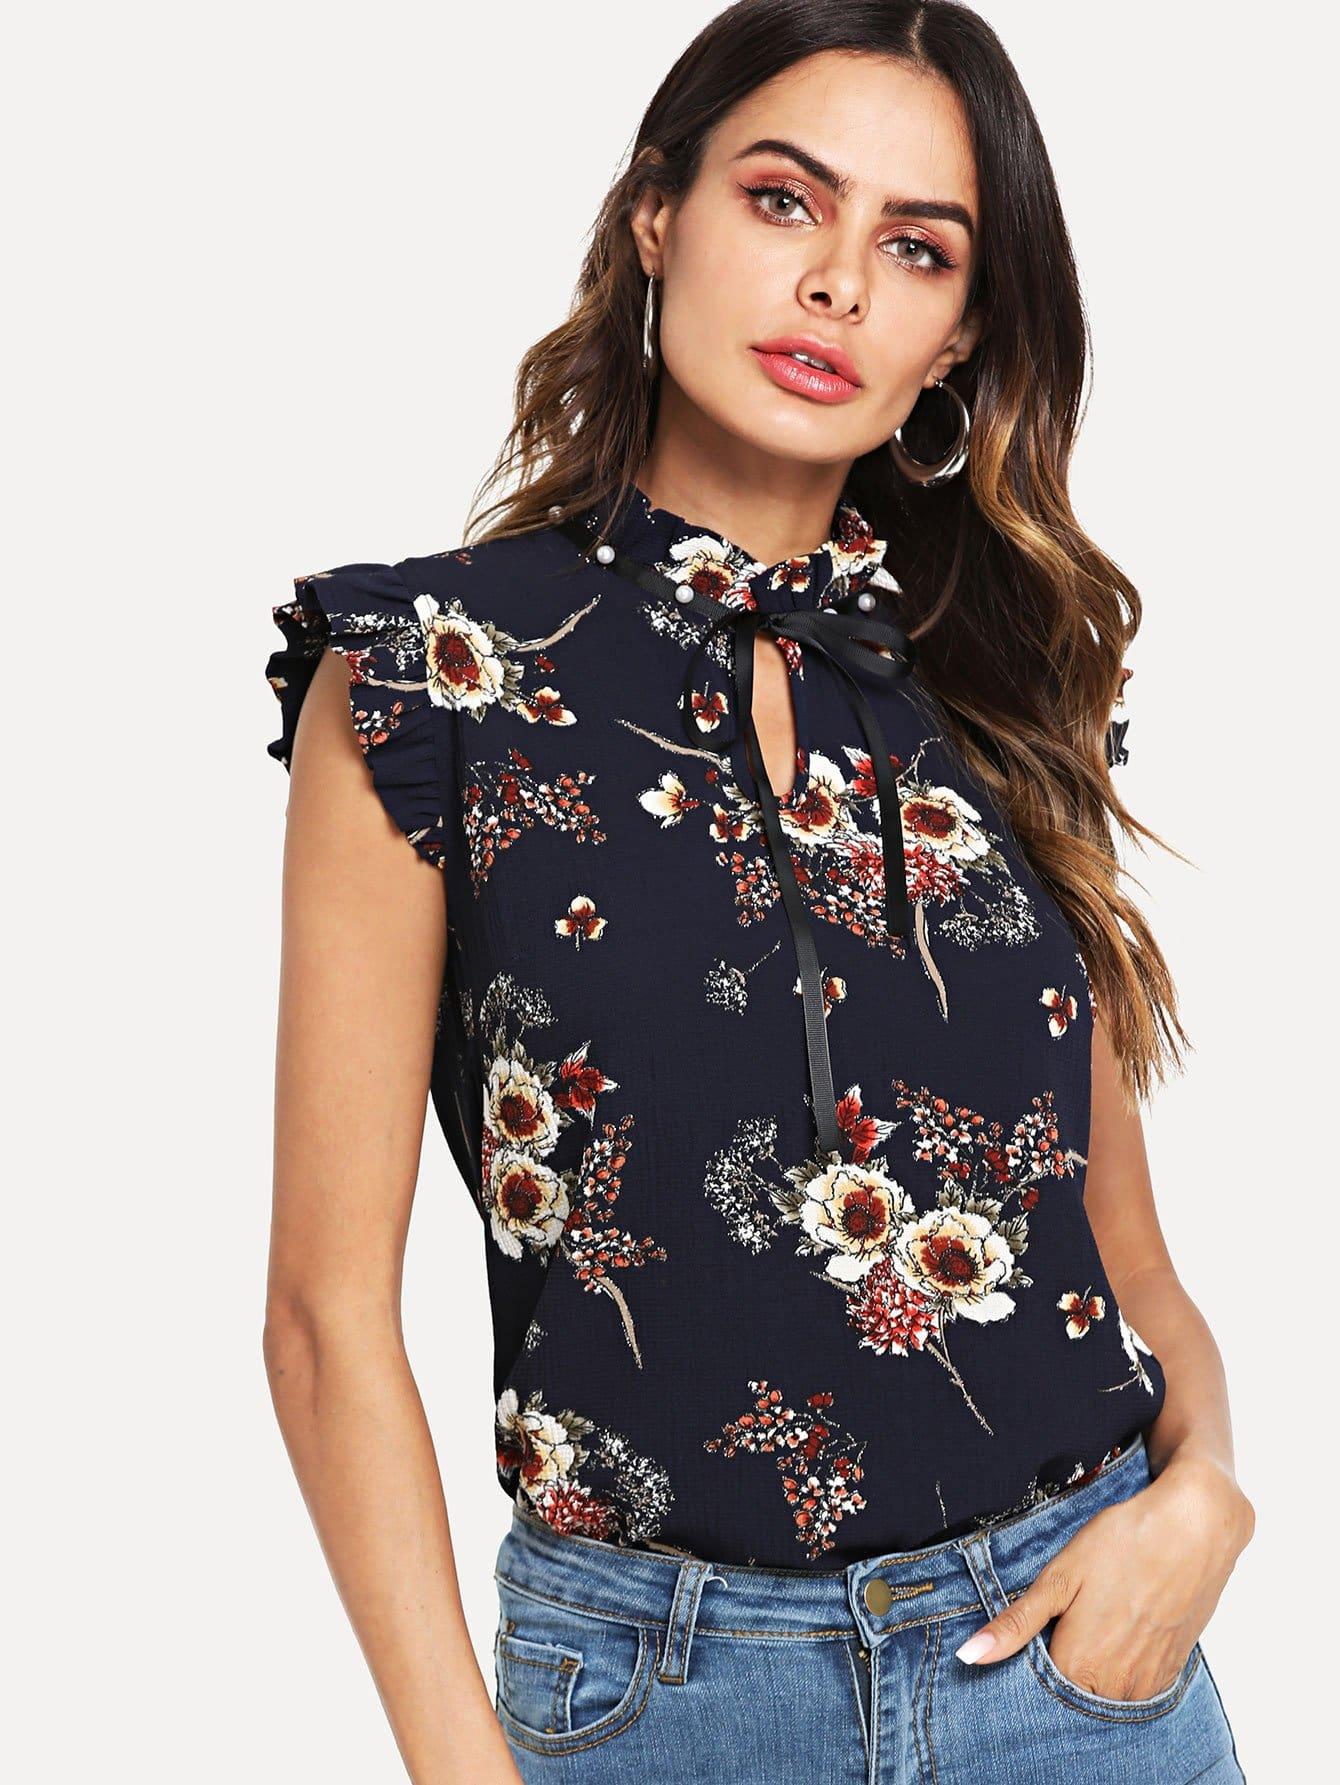 Pearl Embellished Frill Trim Floral Top frill trim floral print top